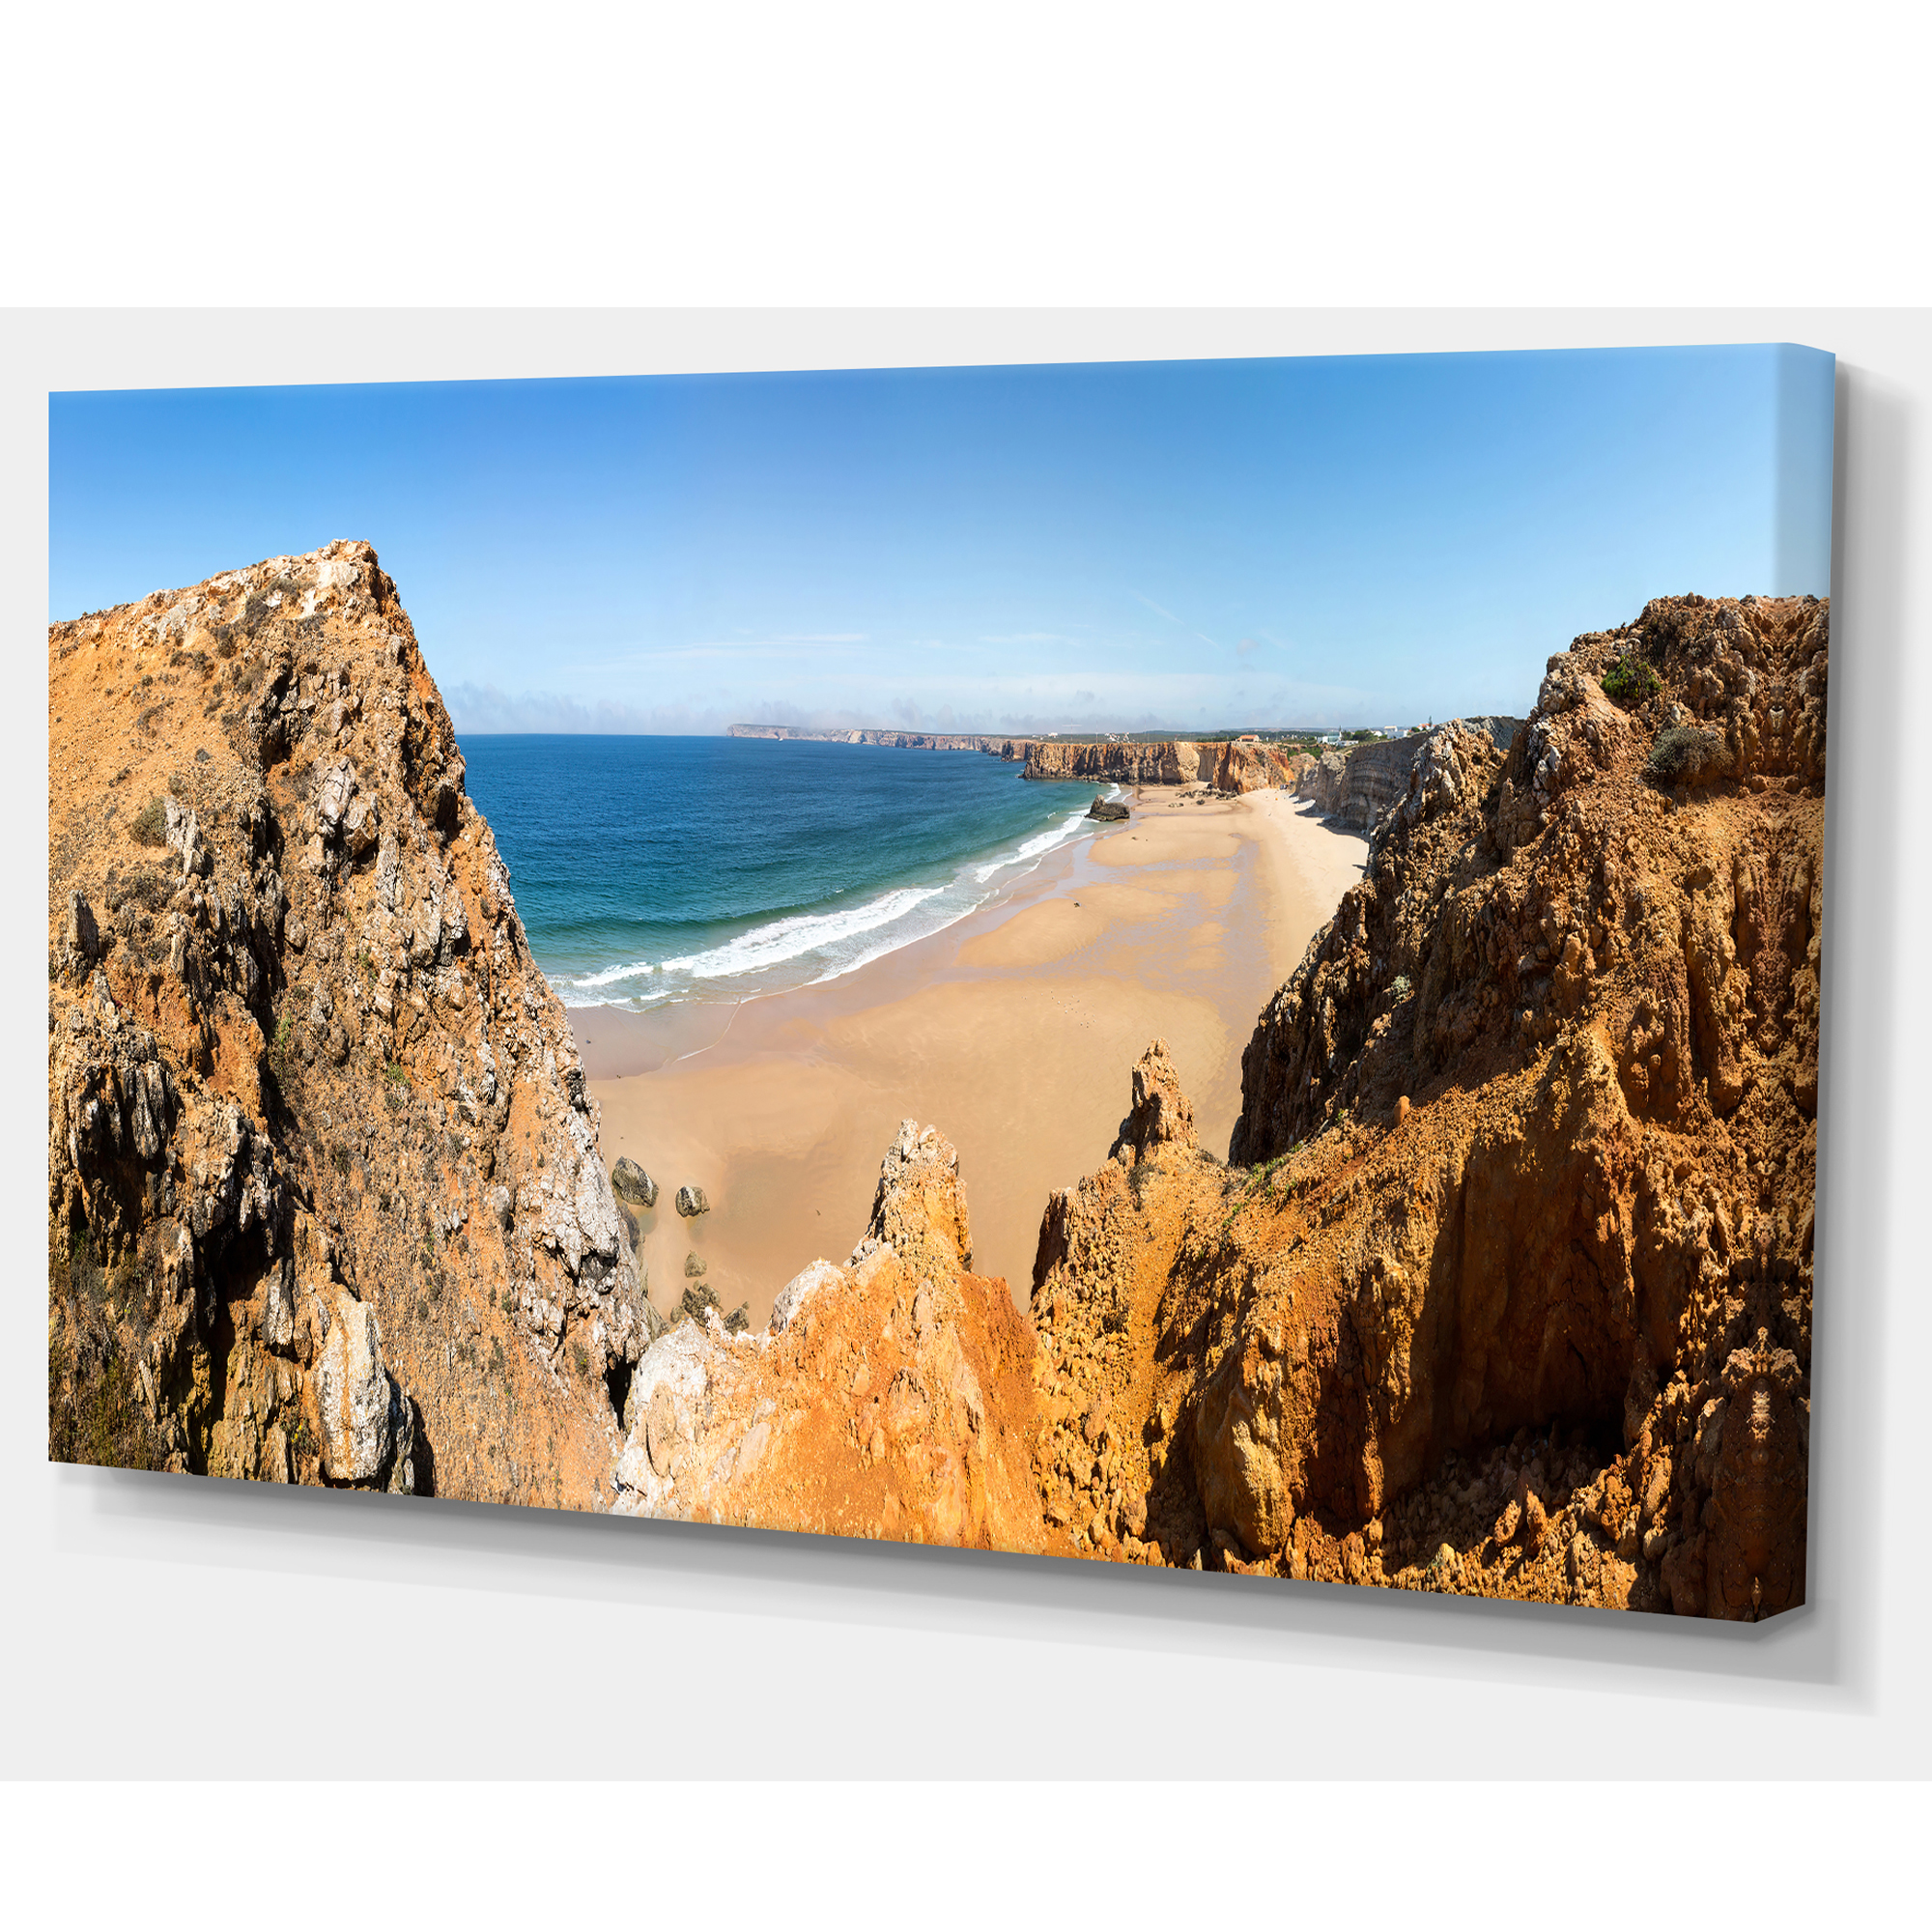 Rocky Bay Portugal Panorama - Landscape Canvas Art Print - image 1 de 3